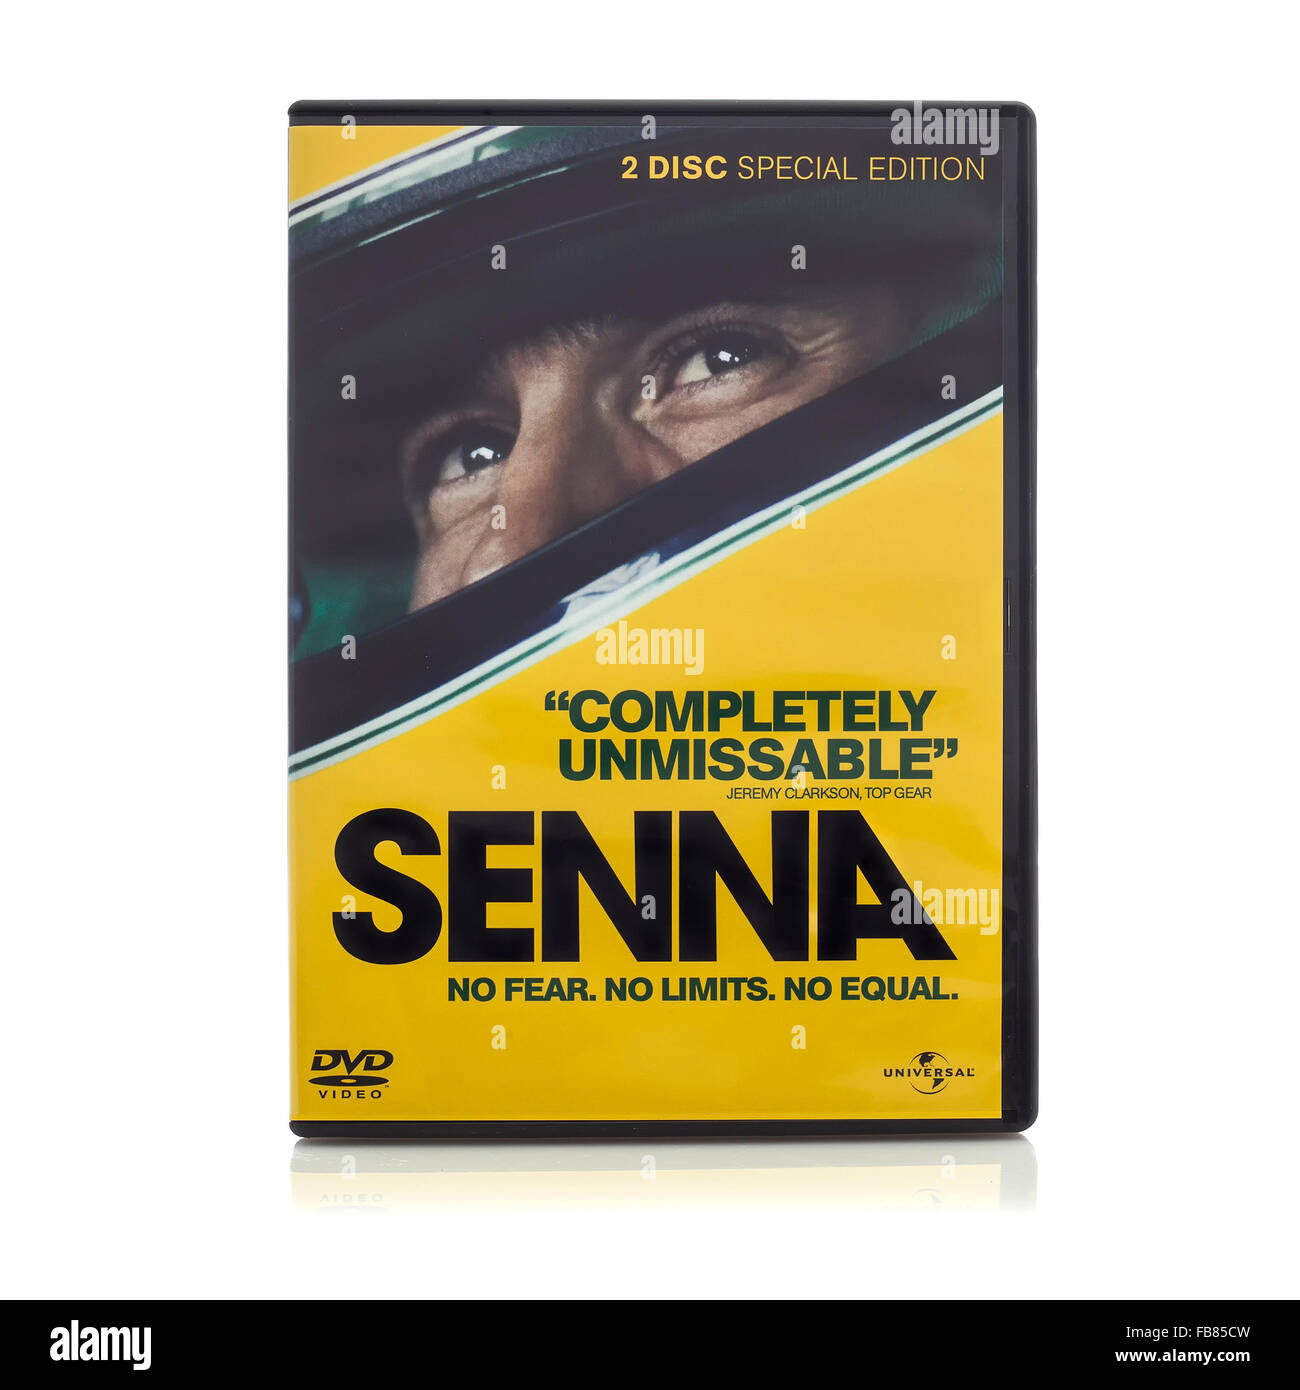 SENNA DVD Film about the story of Ayrton Senna from Universal - Stock Image